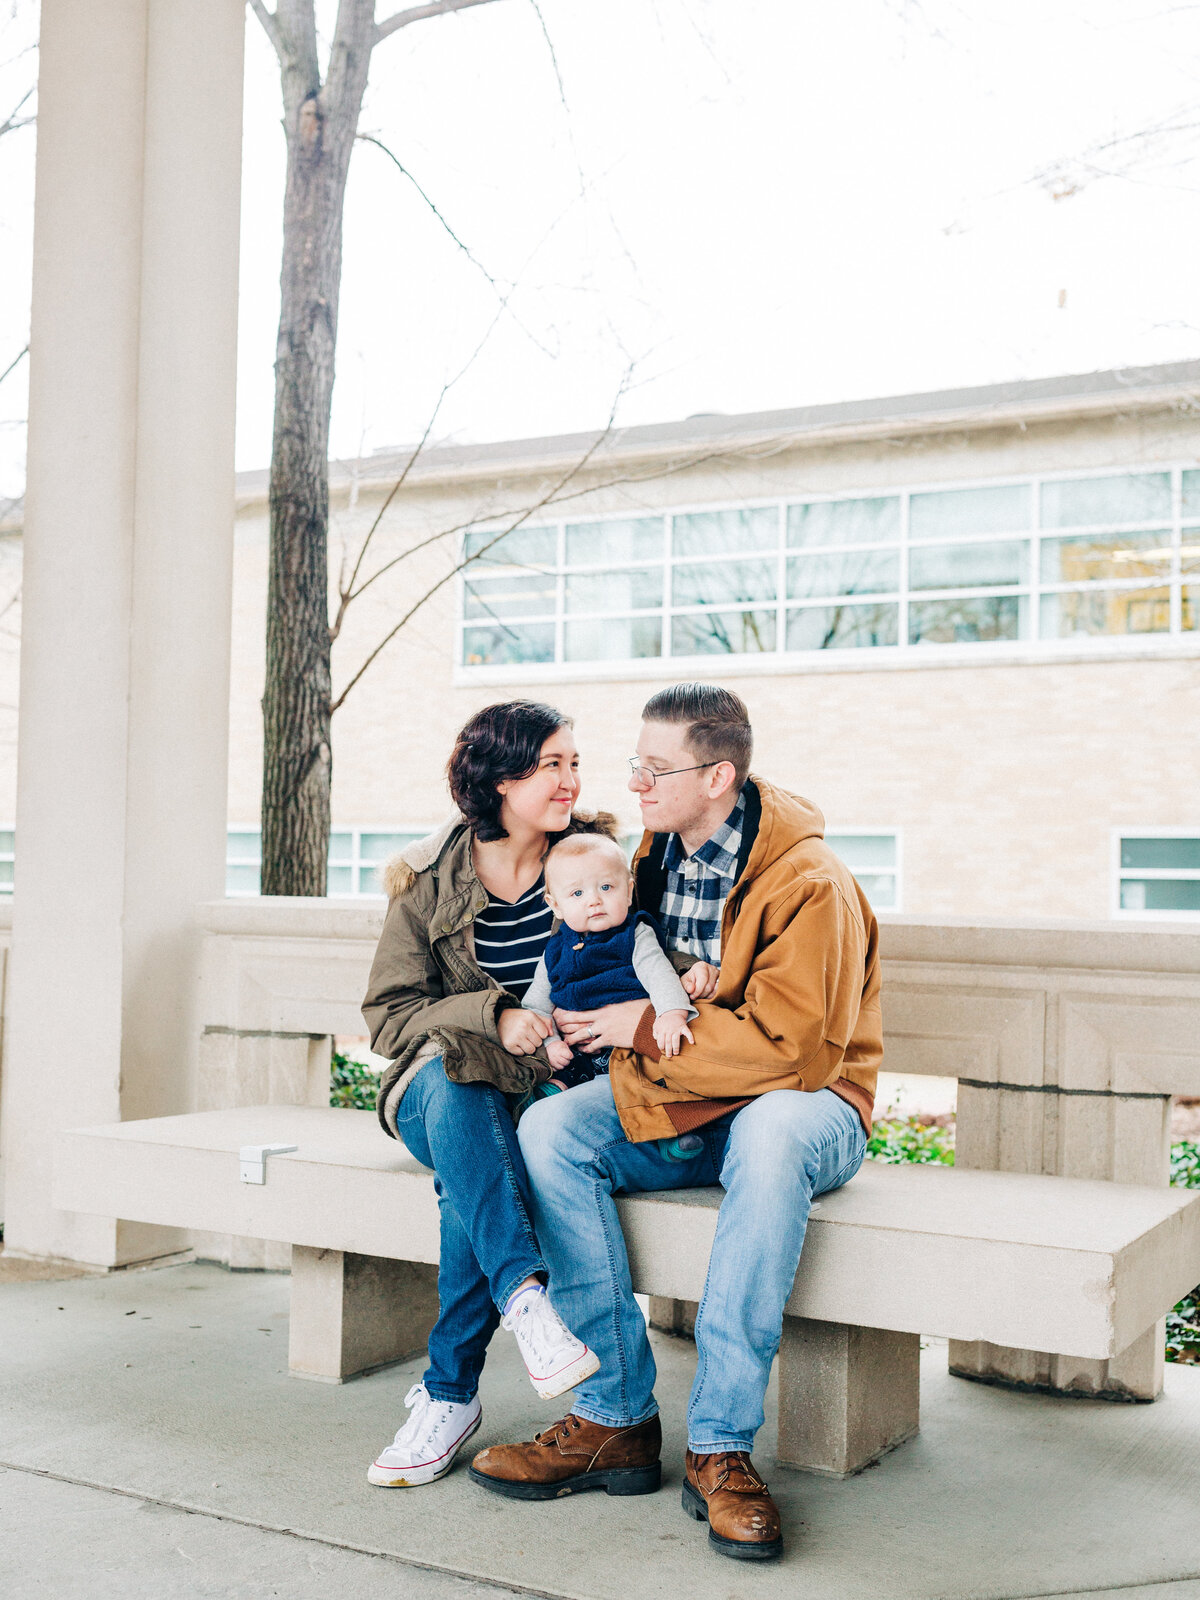 Dorothy_Louise_Photography_Fenske_Family_Forest_Park_Jewel_Box_and_Muny-117